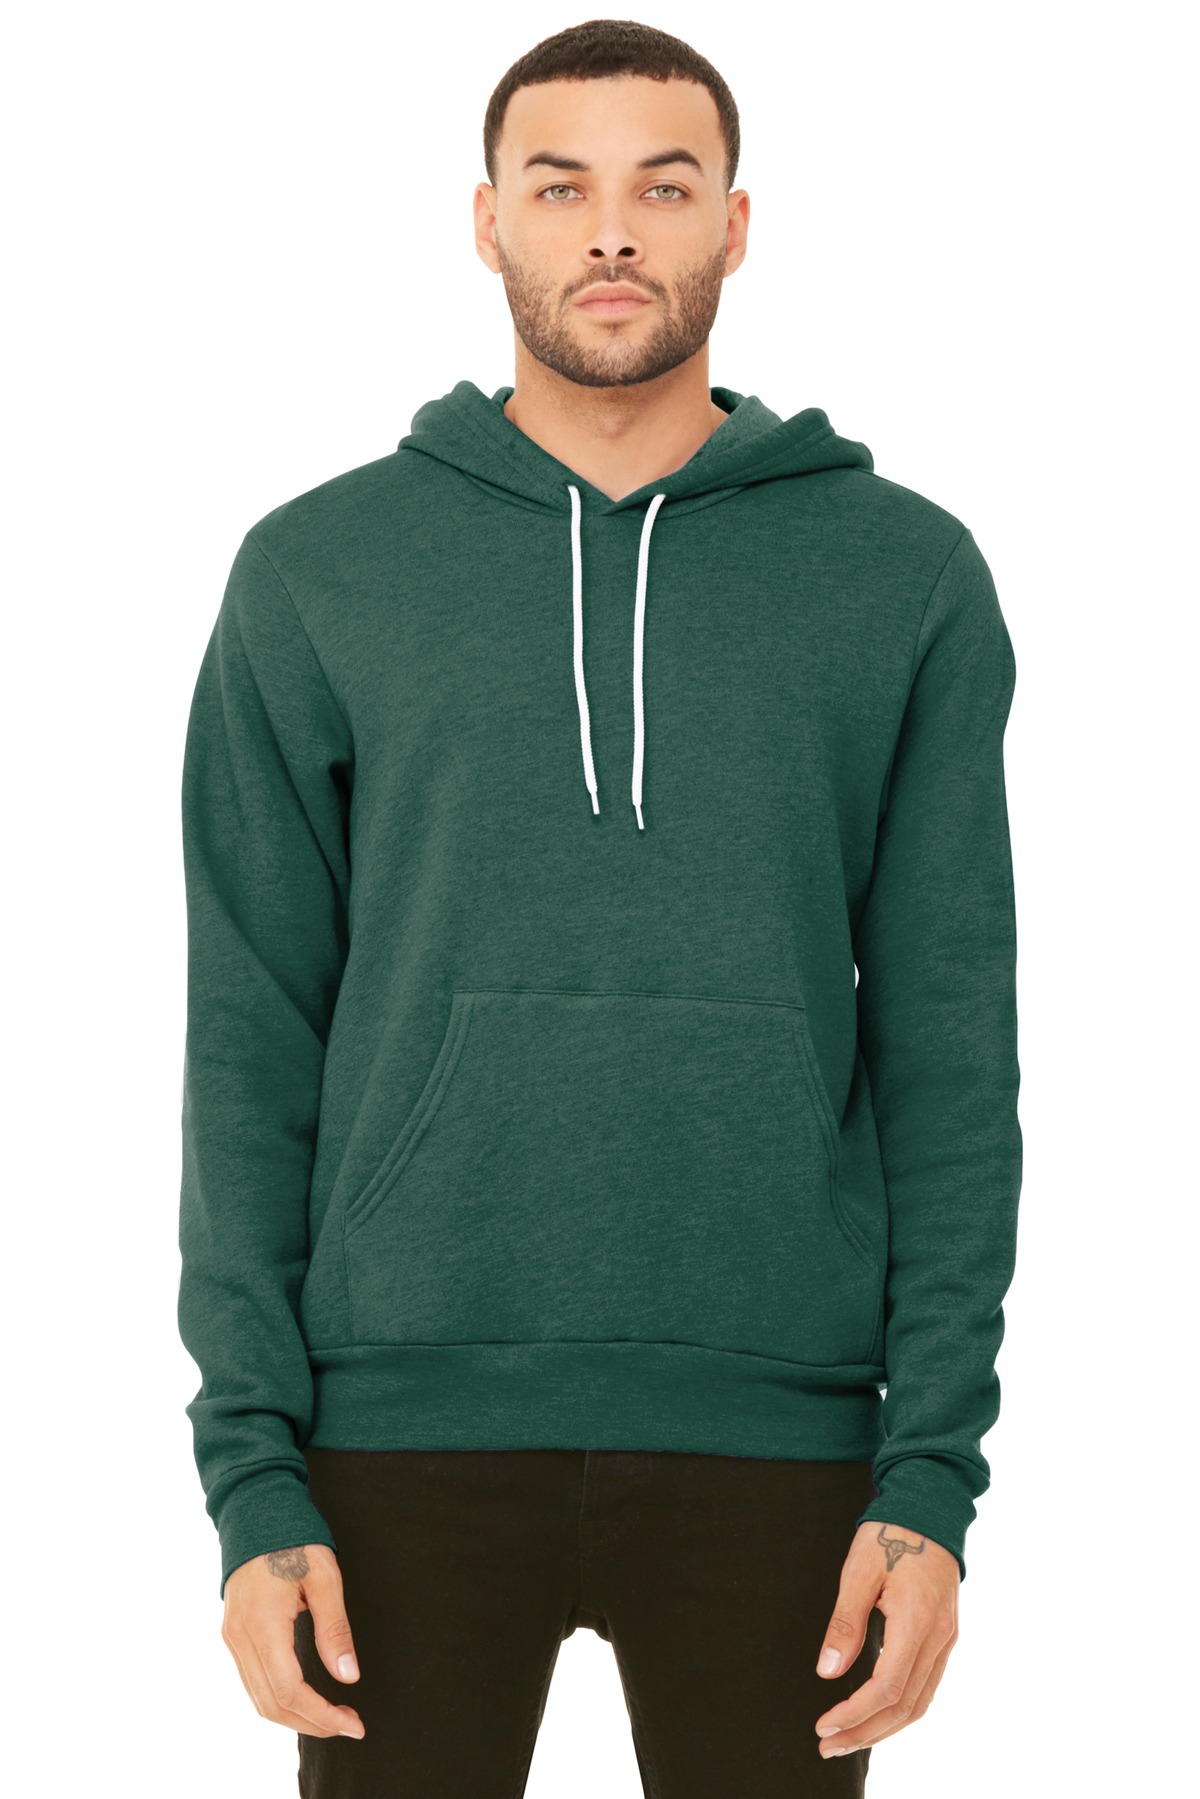 BELLA+CANVAS  ®  Unisex Sponge Fleece Pullover Hoodie. BC3719 - Heather Forest